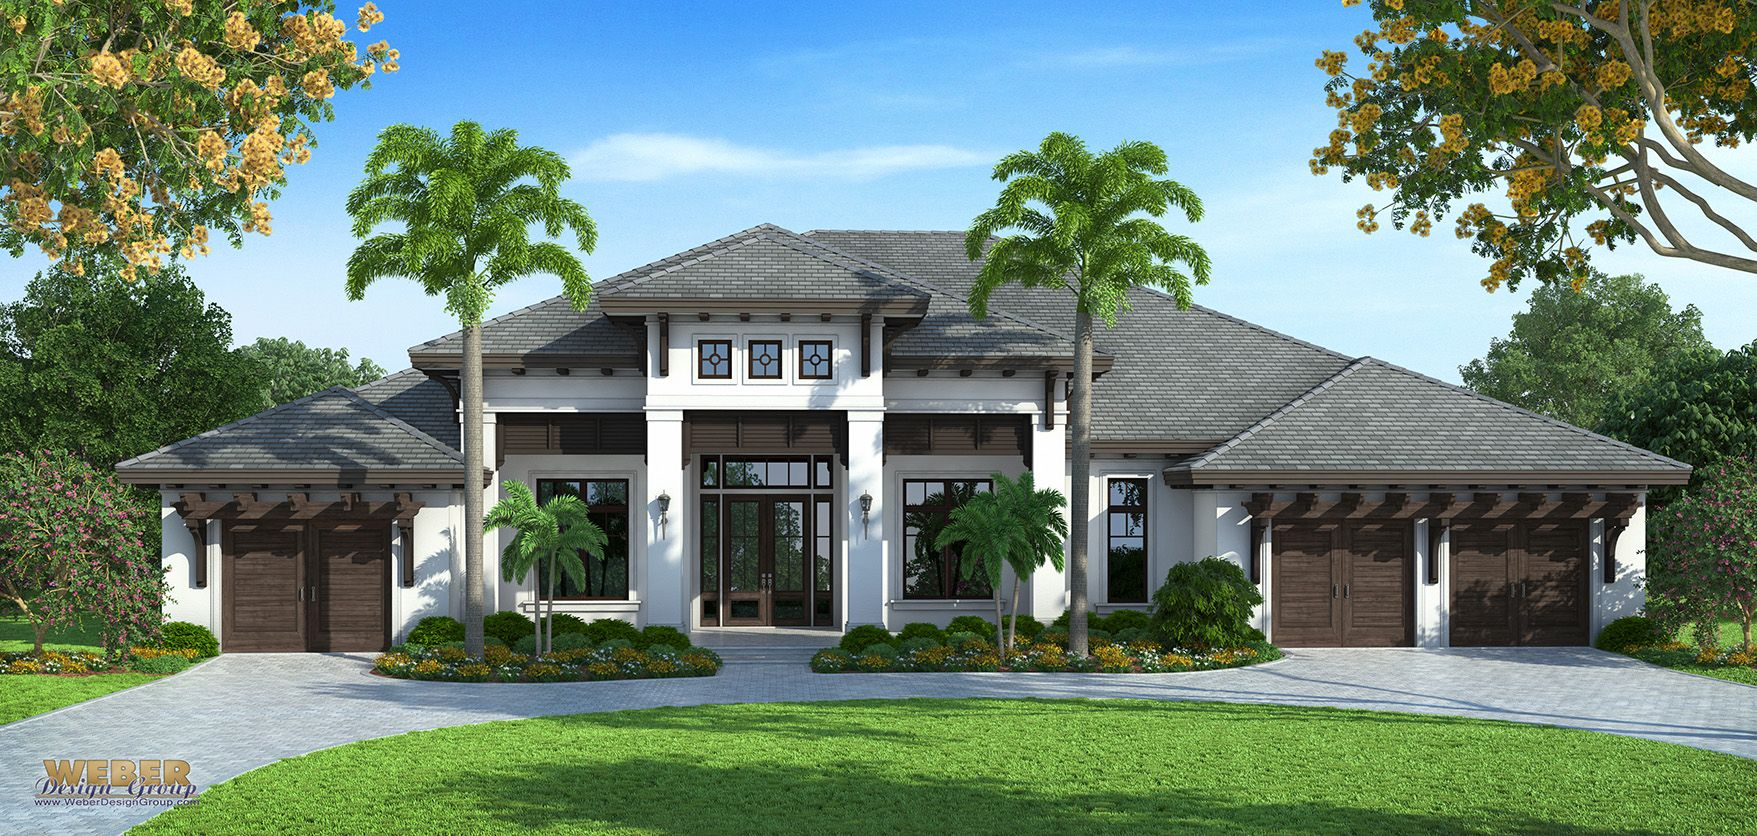 Transitional west indies style house plans by weber design for Florida house plans with photos